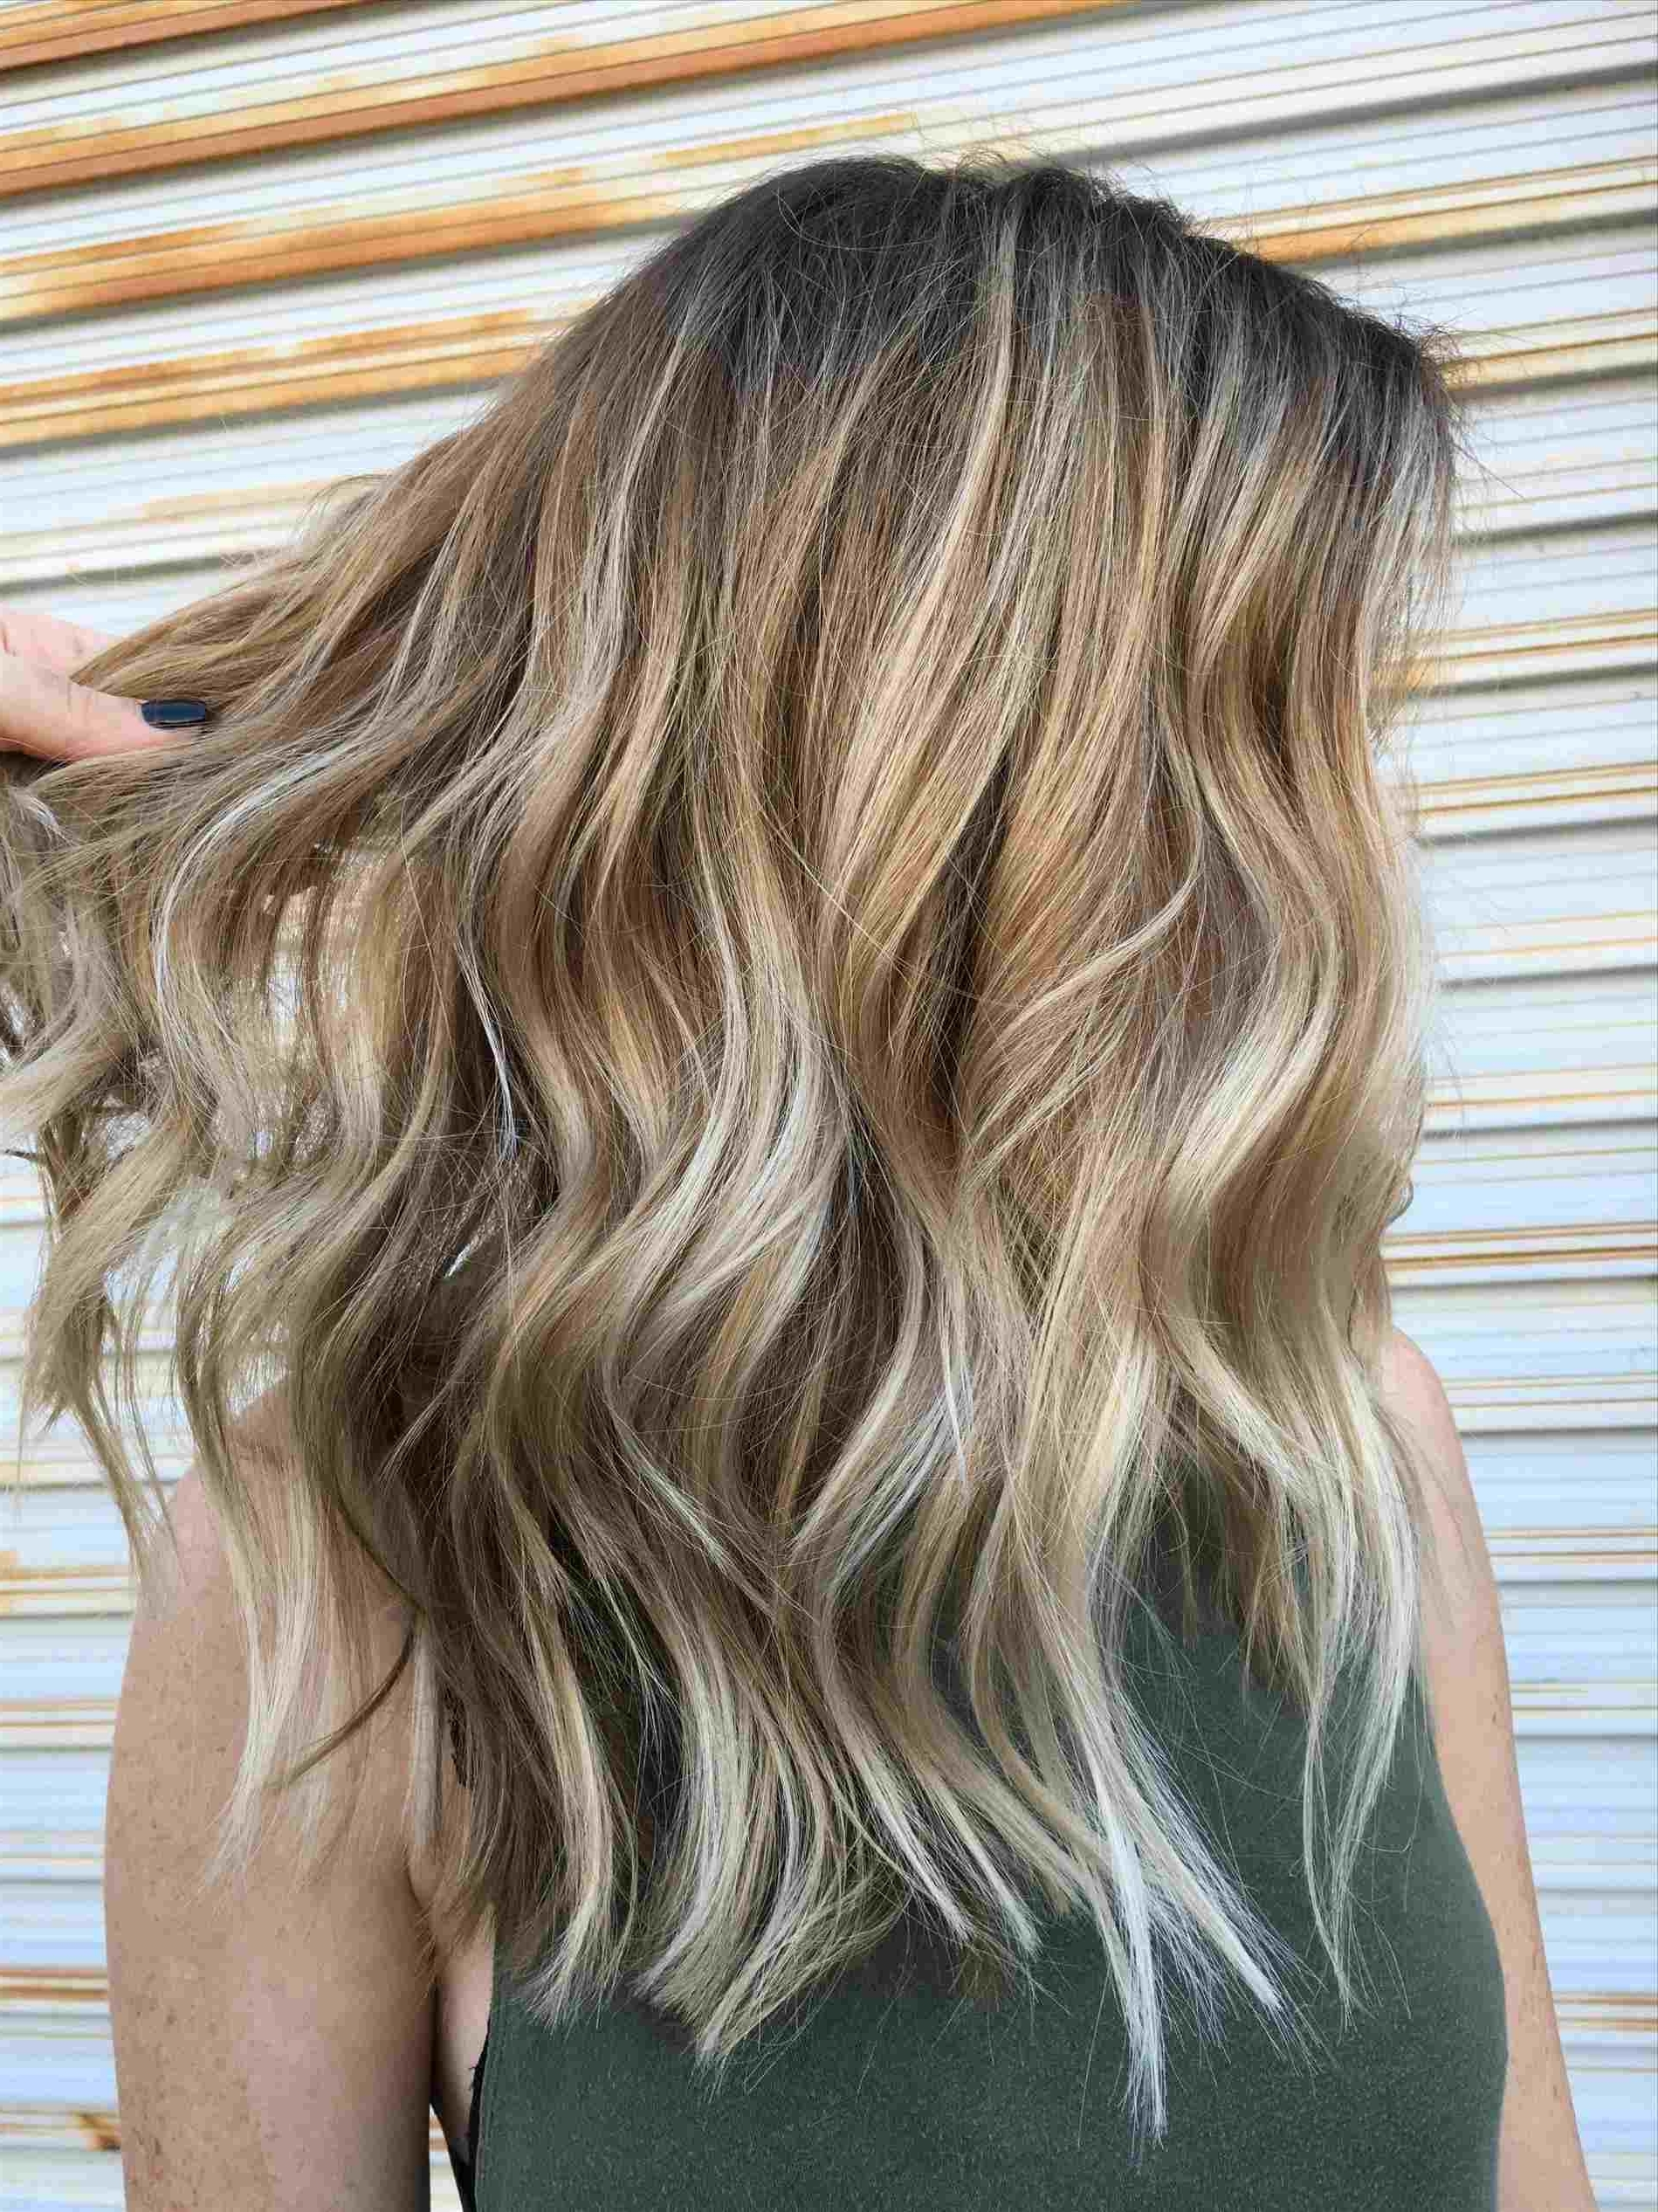 Icy Ashy Blonde Balayage Highlights Shadow Root Waves Pertaining To Favorite Icy Highlights And Loose Curls Blonde Hairstyles (View 4 of 20)